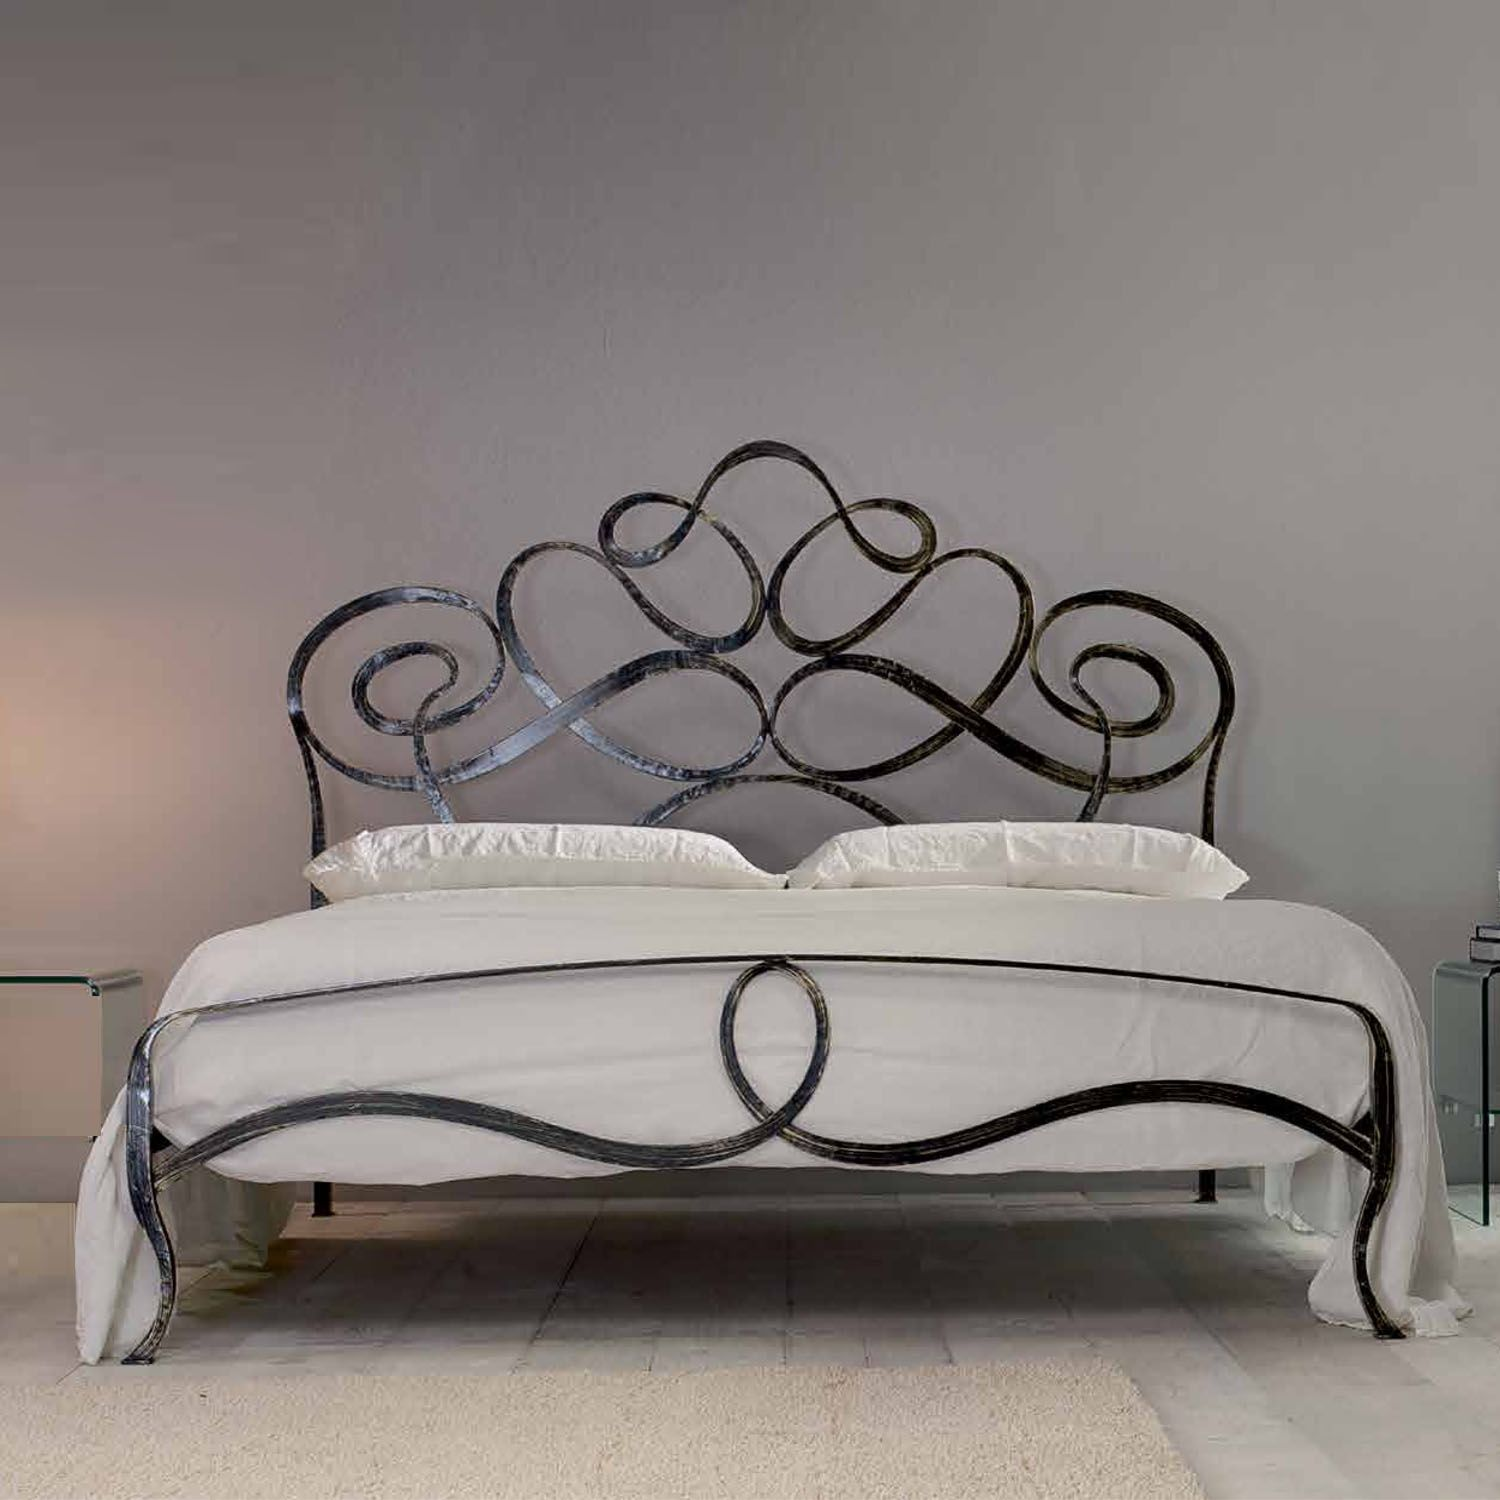 Arabesco Wrought Iron King Size Bed By Cosatto Letti Wrought